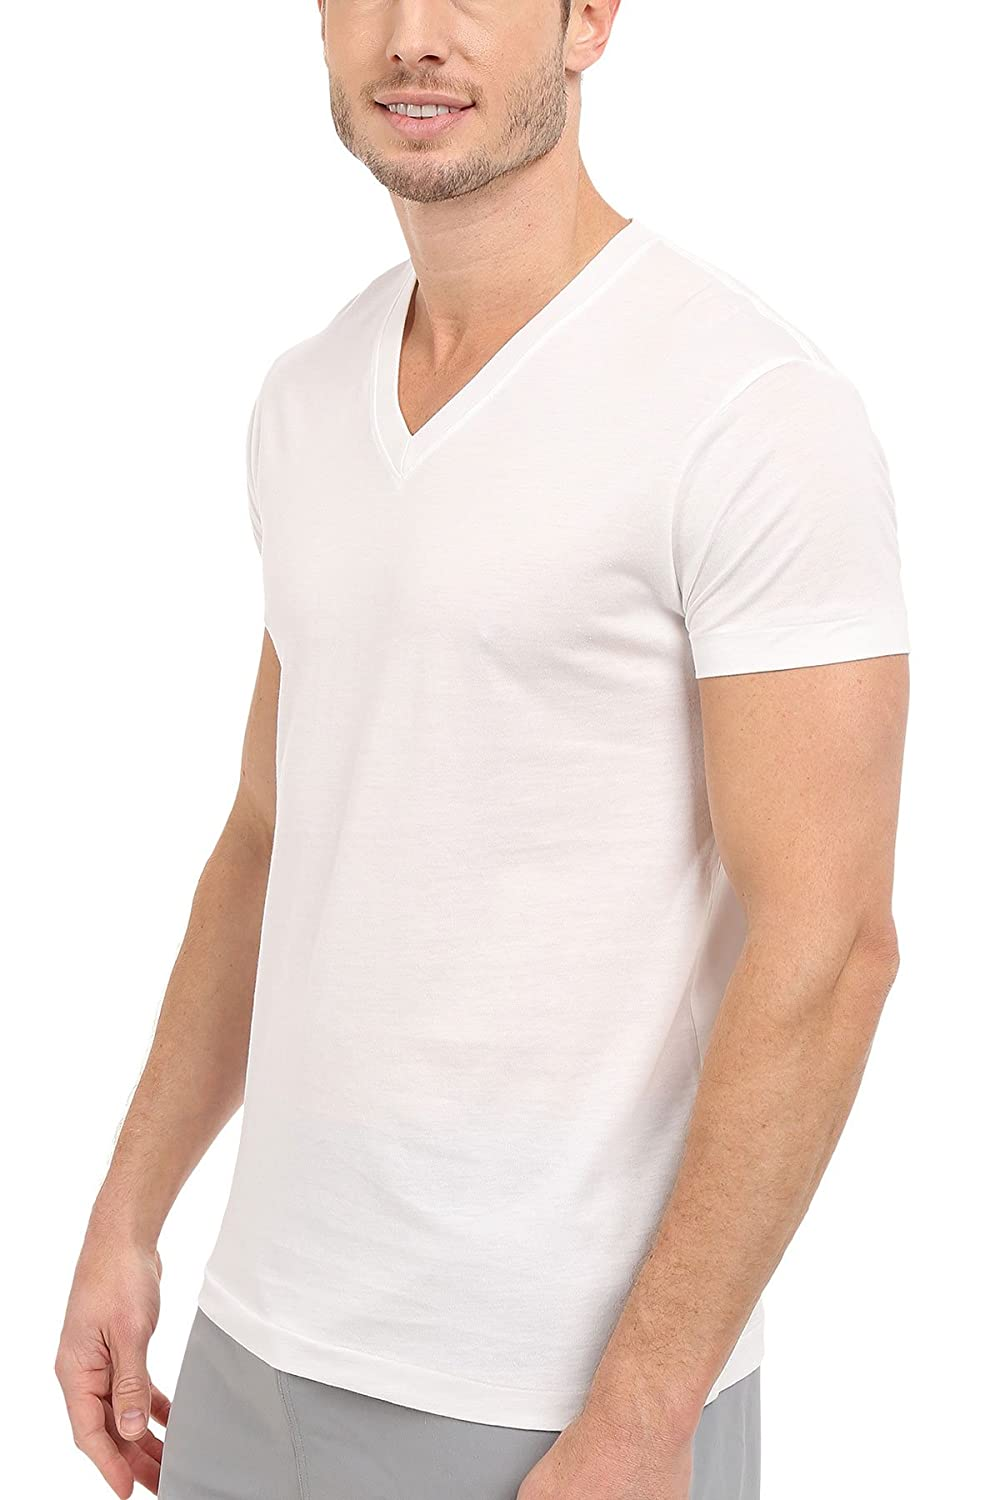 Kirkland black t shirts xl - Amazon Com Kirkland Signature Men S 100 Pima Cotton 4 Pack V Neck T Shirts Clothing